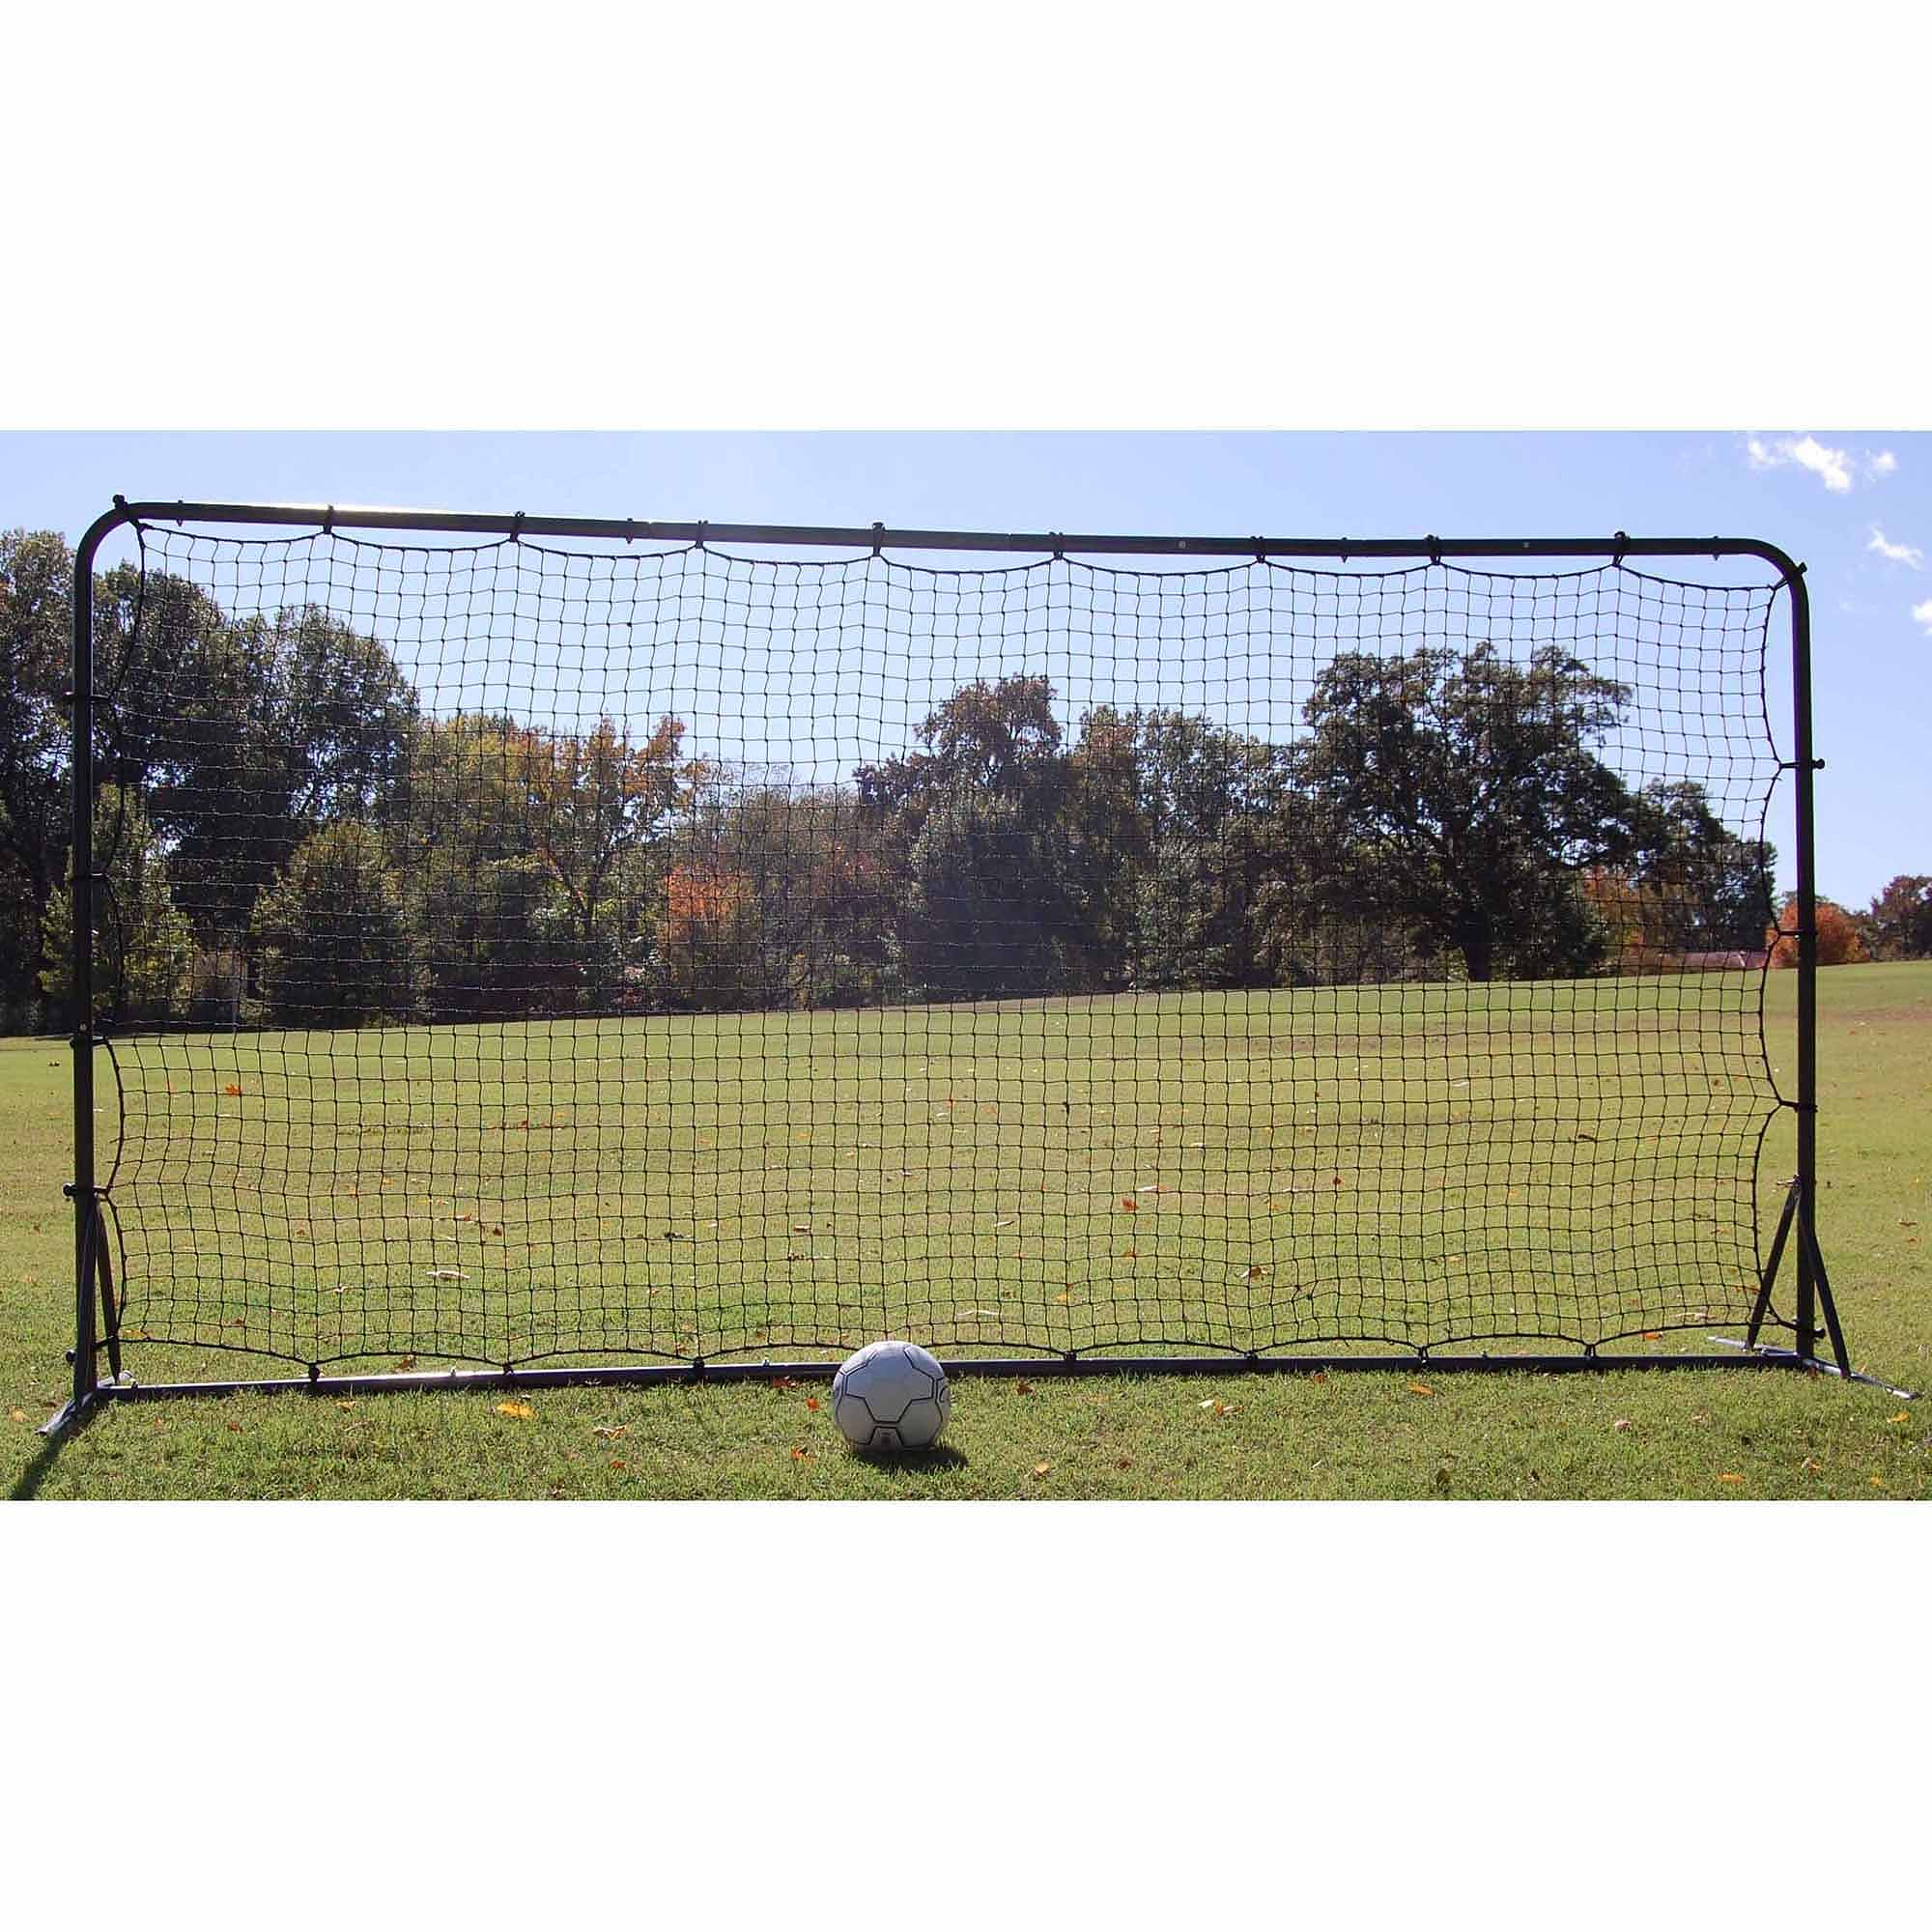 Soccer Rebounder Net and Frame Kit, 6' x 12'